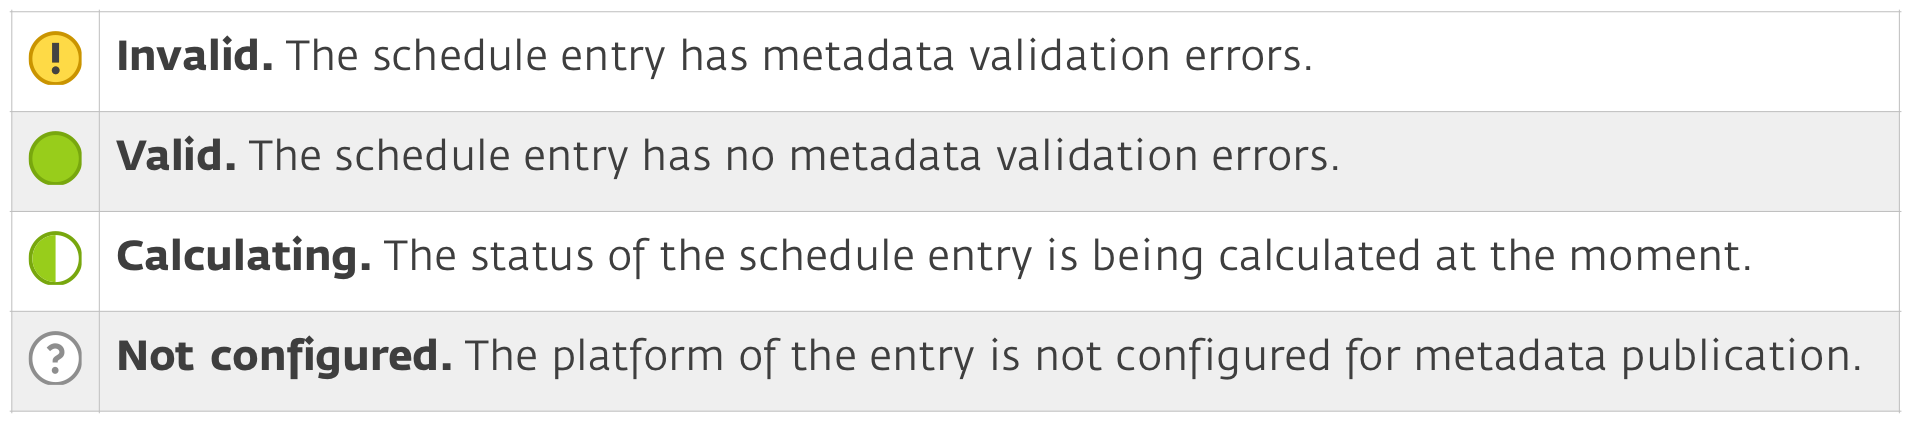 Publication and metadata statuses 2